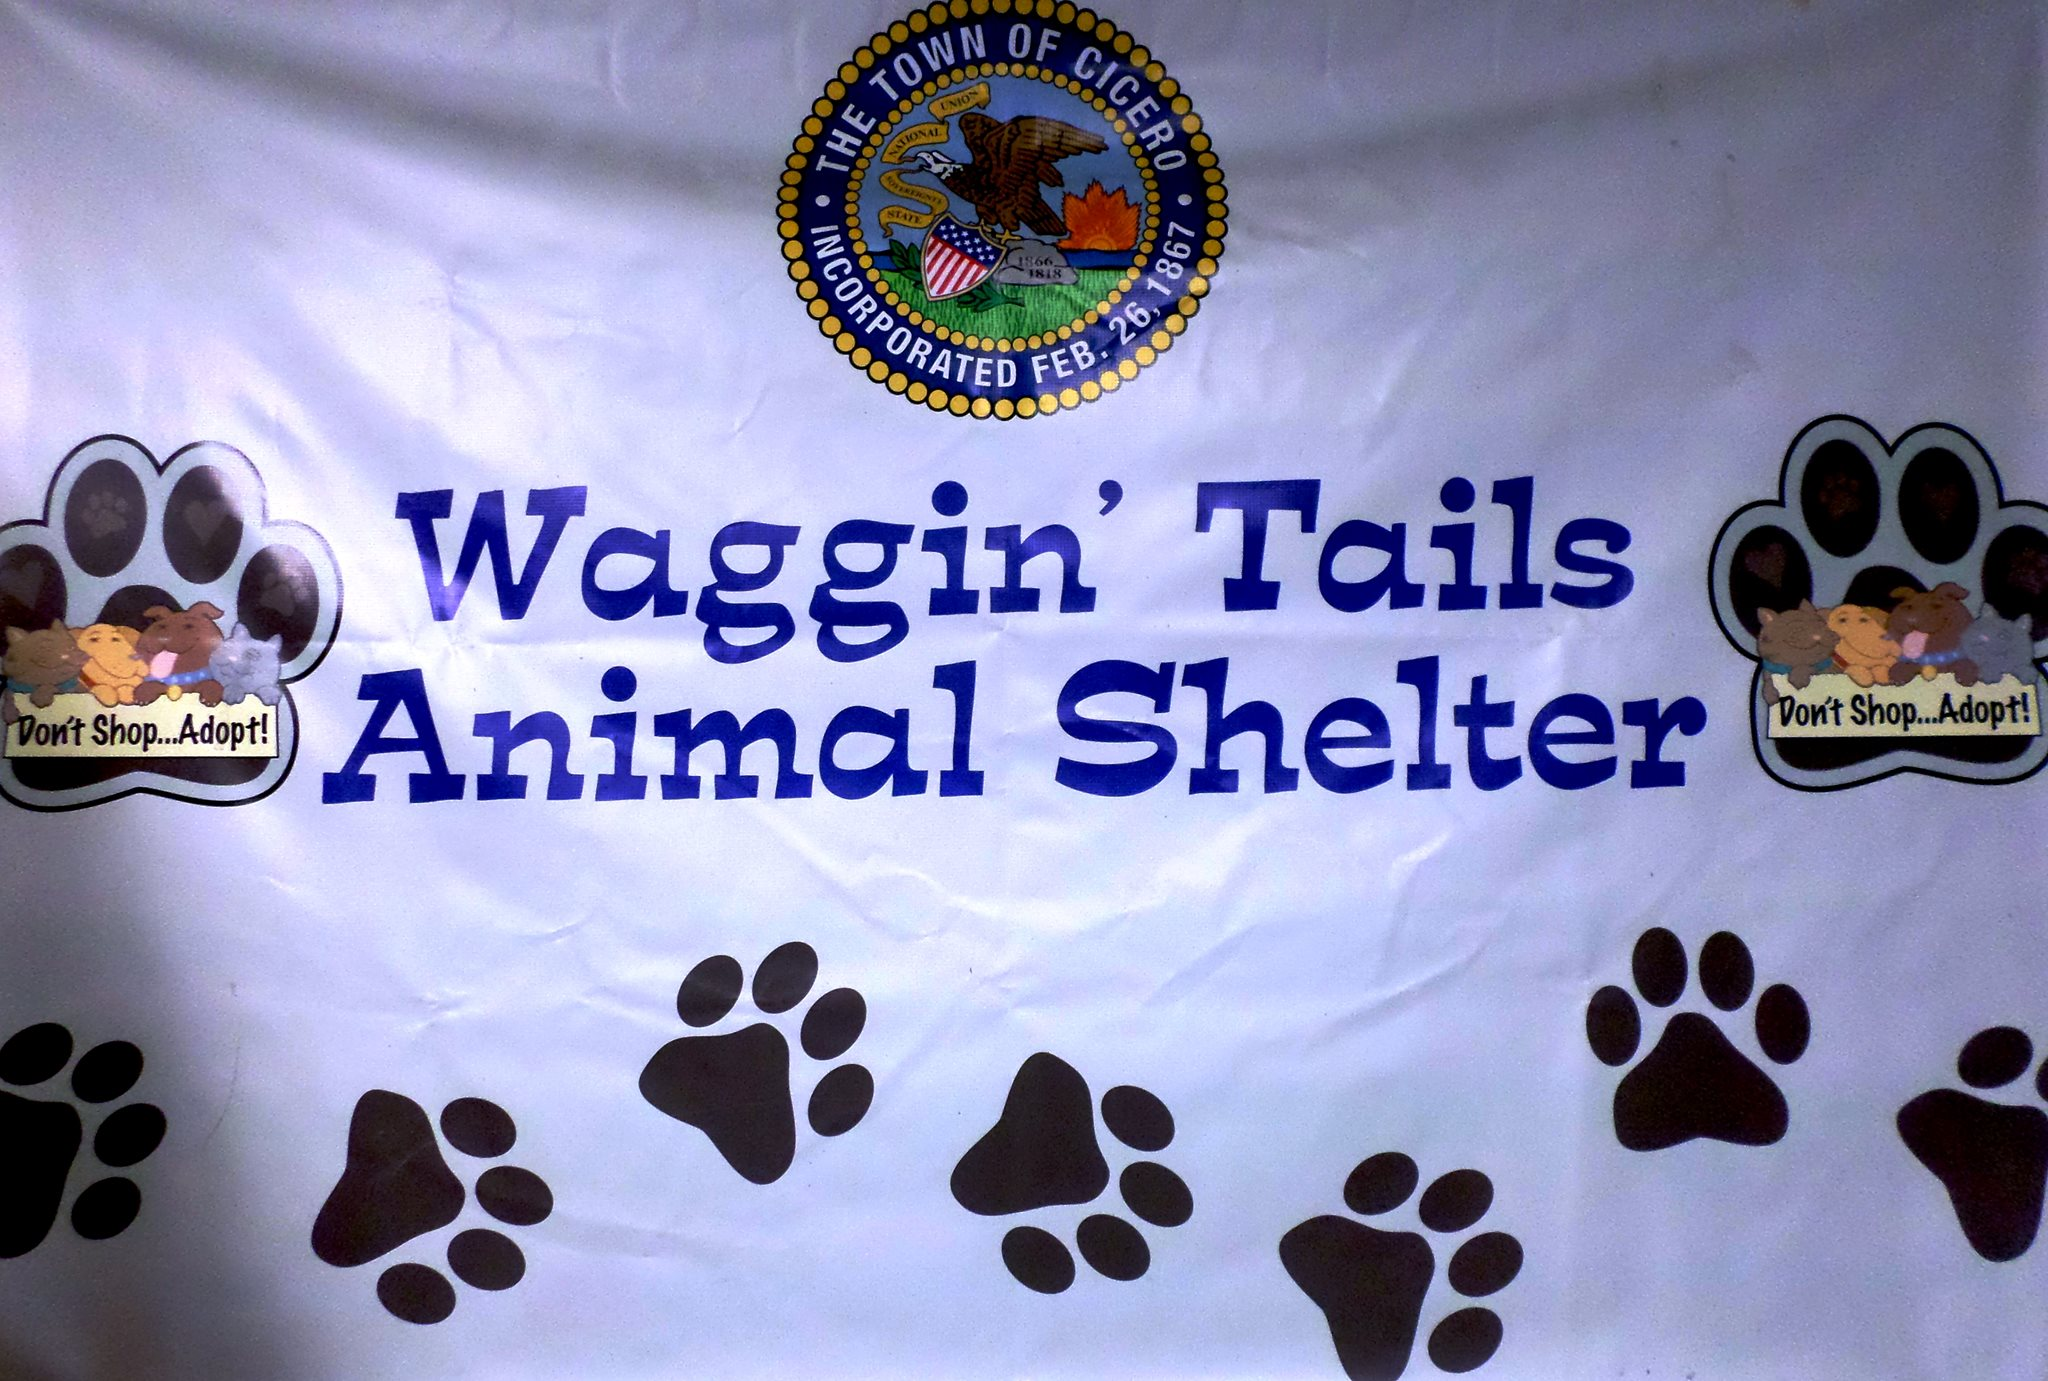 For the season 2019s last macfest, waggin wheels will be tagging along with plenty of adoptable pets